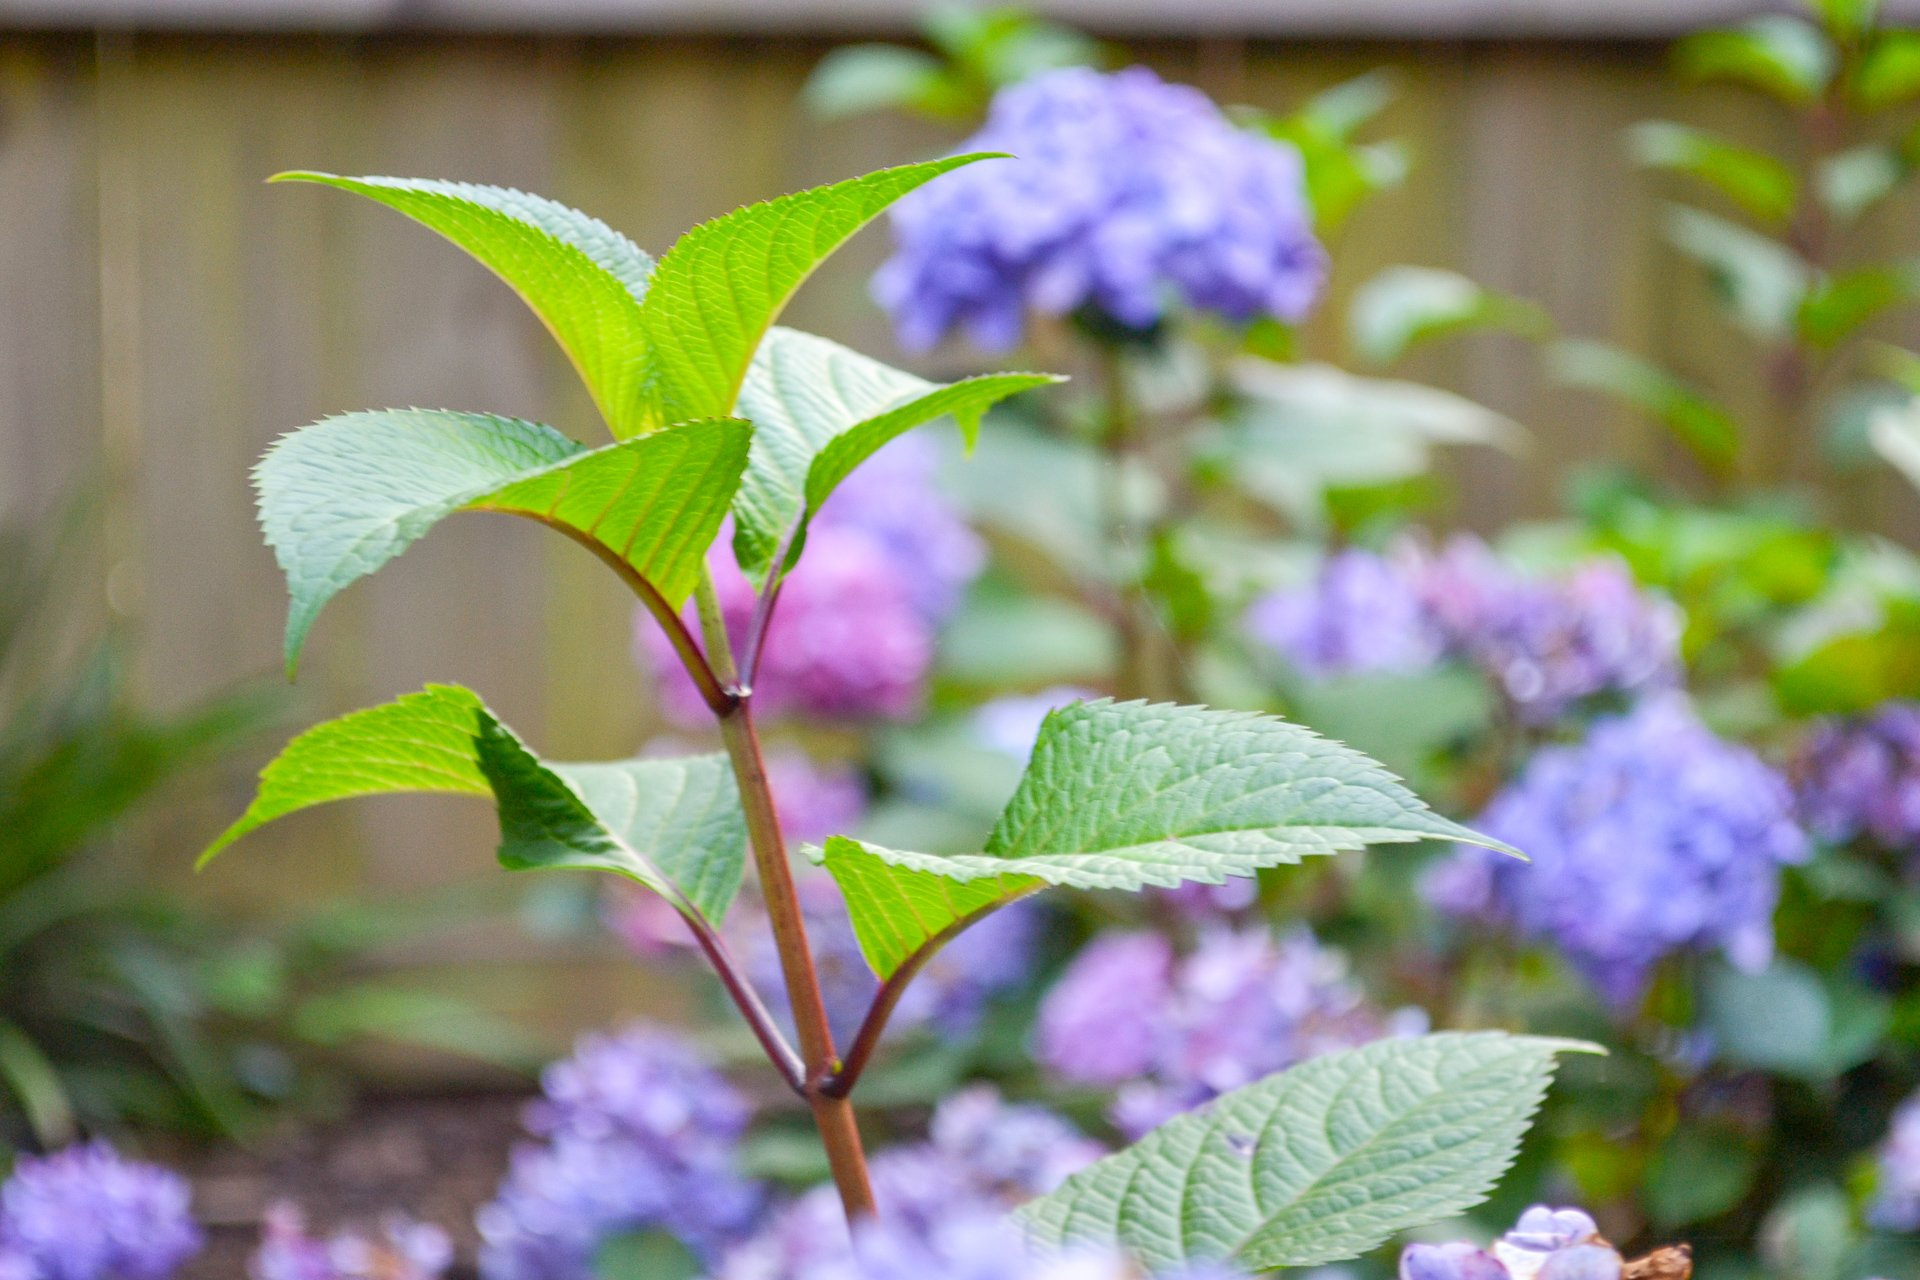 Hydrangeas, like these with bright blue flowers, need minimal care, and are easy to grow.